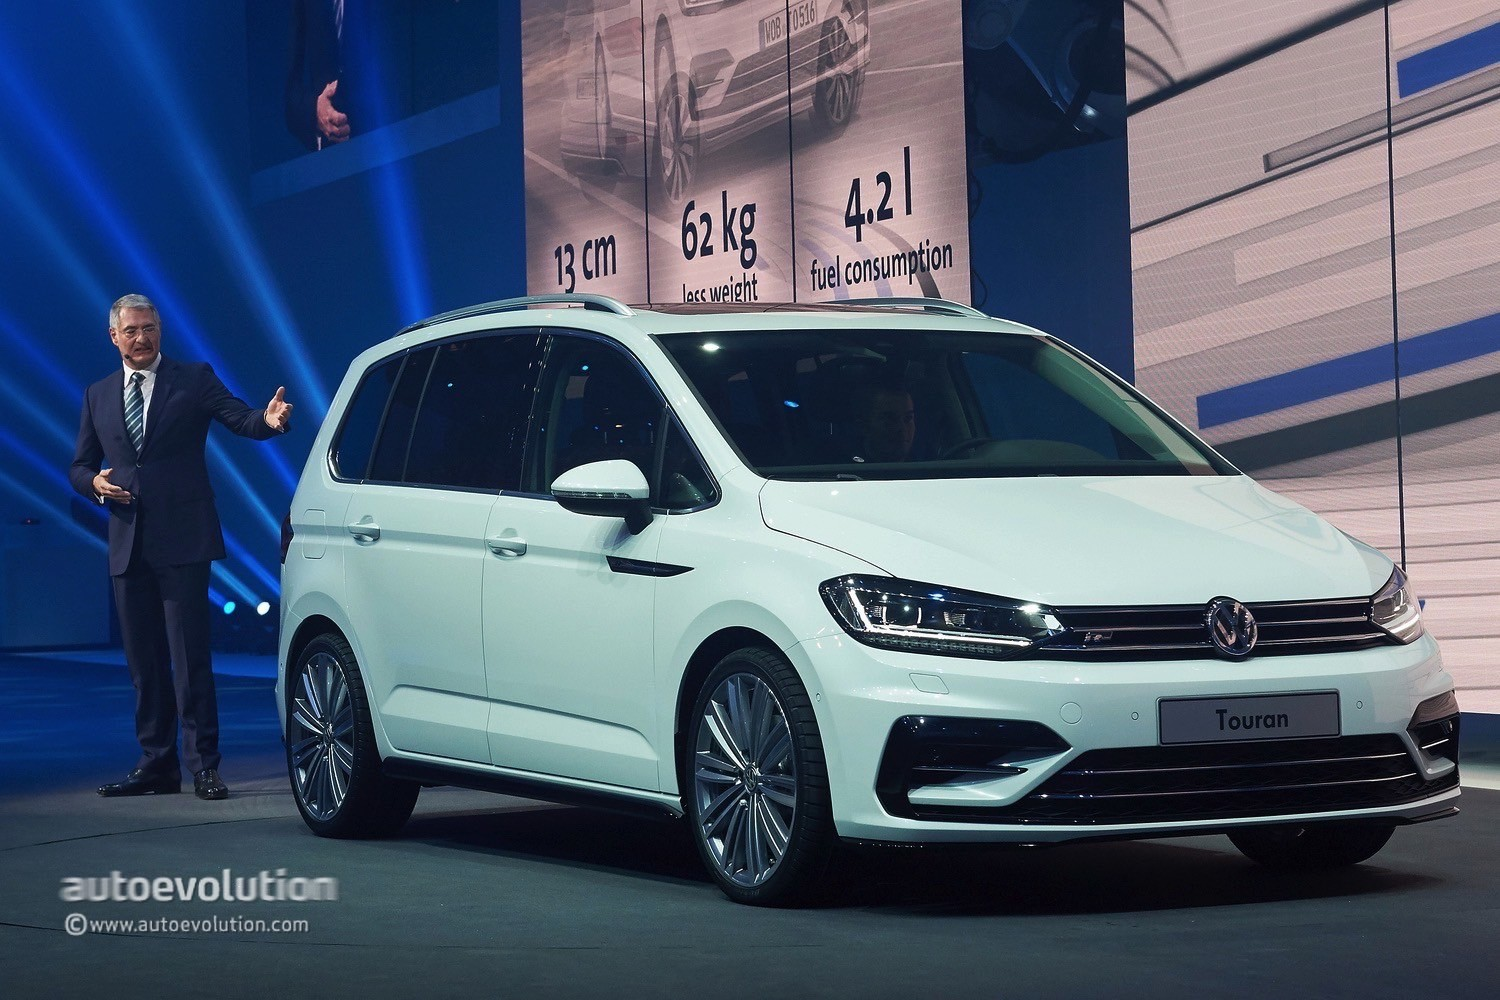 2016 Volkswagen Touran Enters Production in Wolfsburg, Configurator Launched - autoevolution